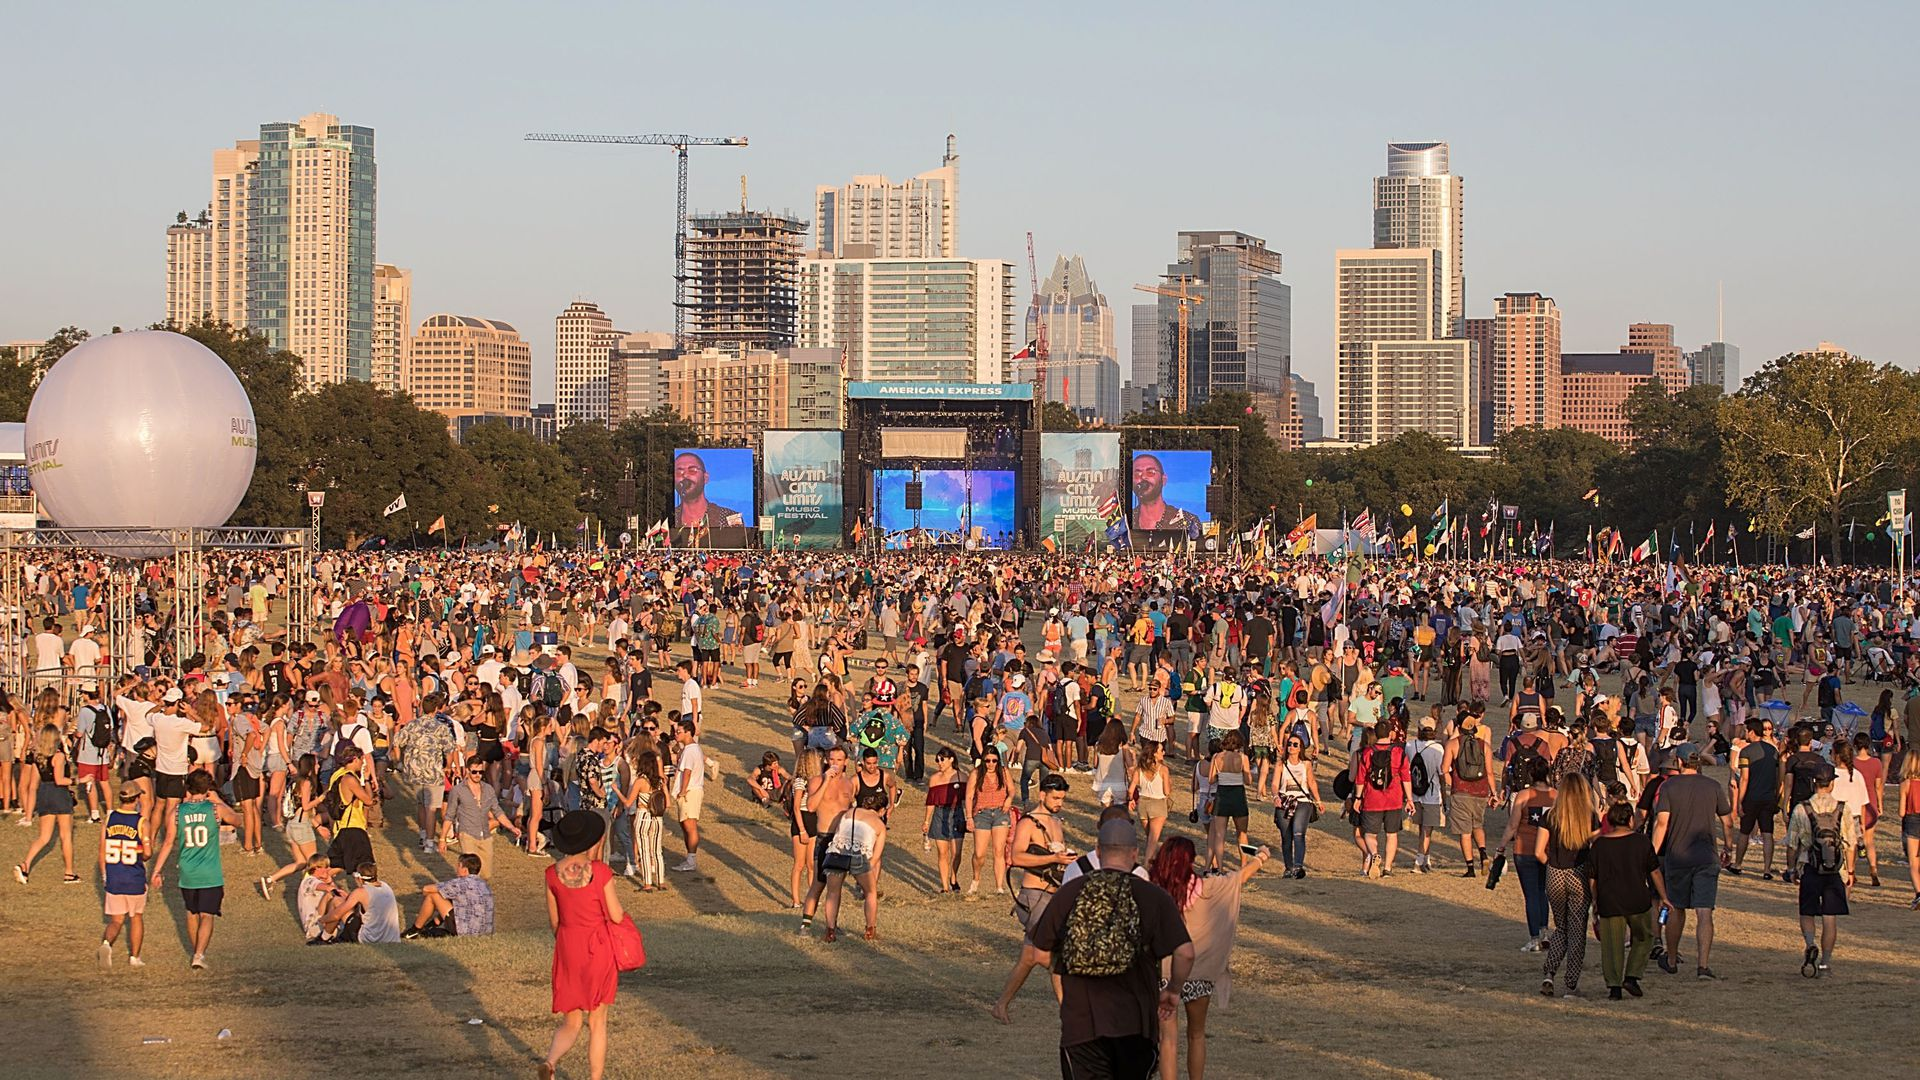 Austin City Limits music festival